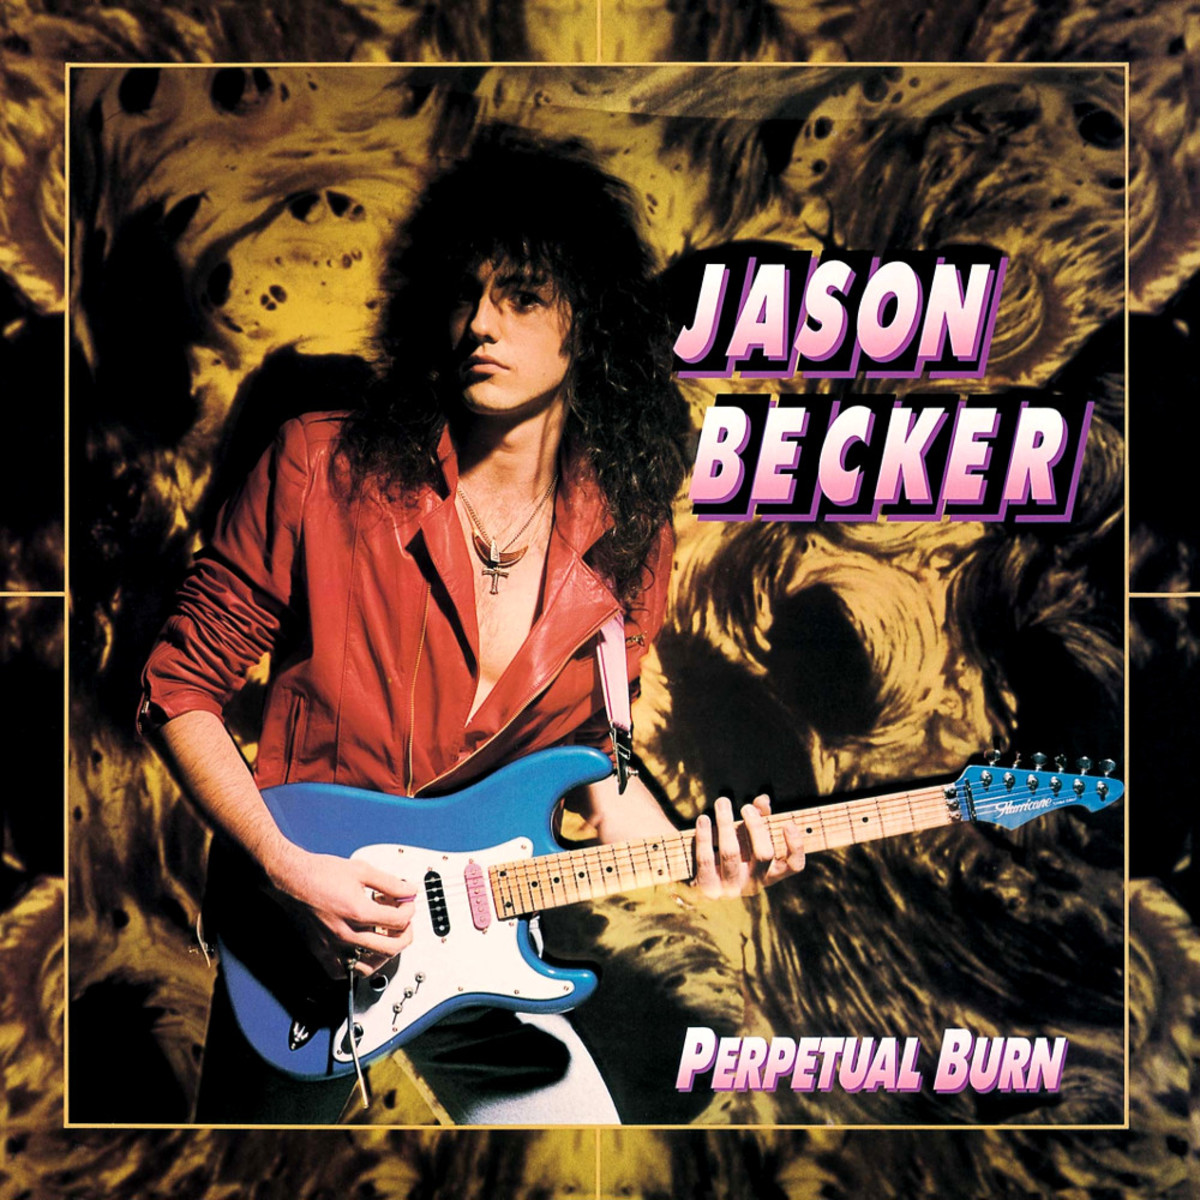 On the cover for Perpetual Burn is guitarist Jason Becker. He would have his career cut short by ALS or Lou Gehrig's Disease but when he could play fast, he was one of the most exciting guitar players in the world.